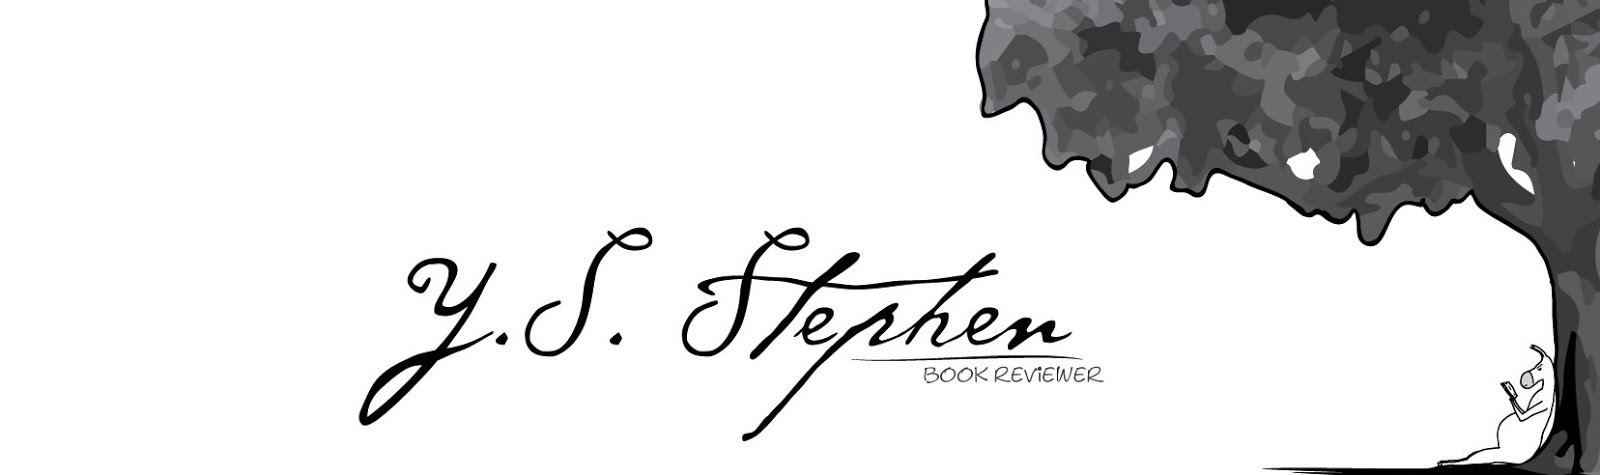 Y.S. Stephen - Book Reviewer